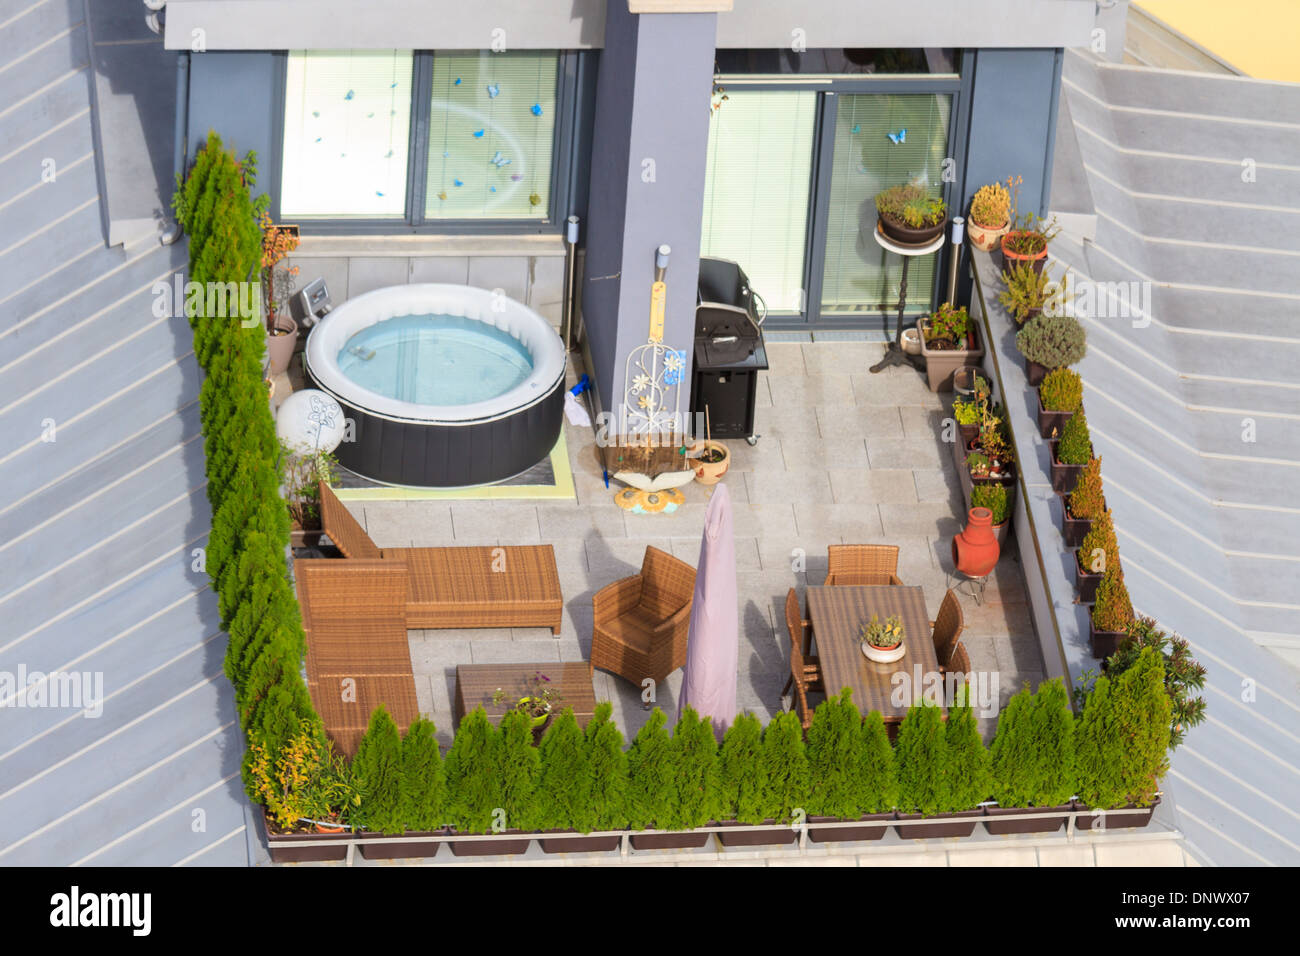 Terrace on the roof with green garden and jacuzzi tub Stock Photo ...